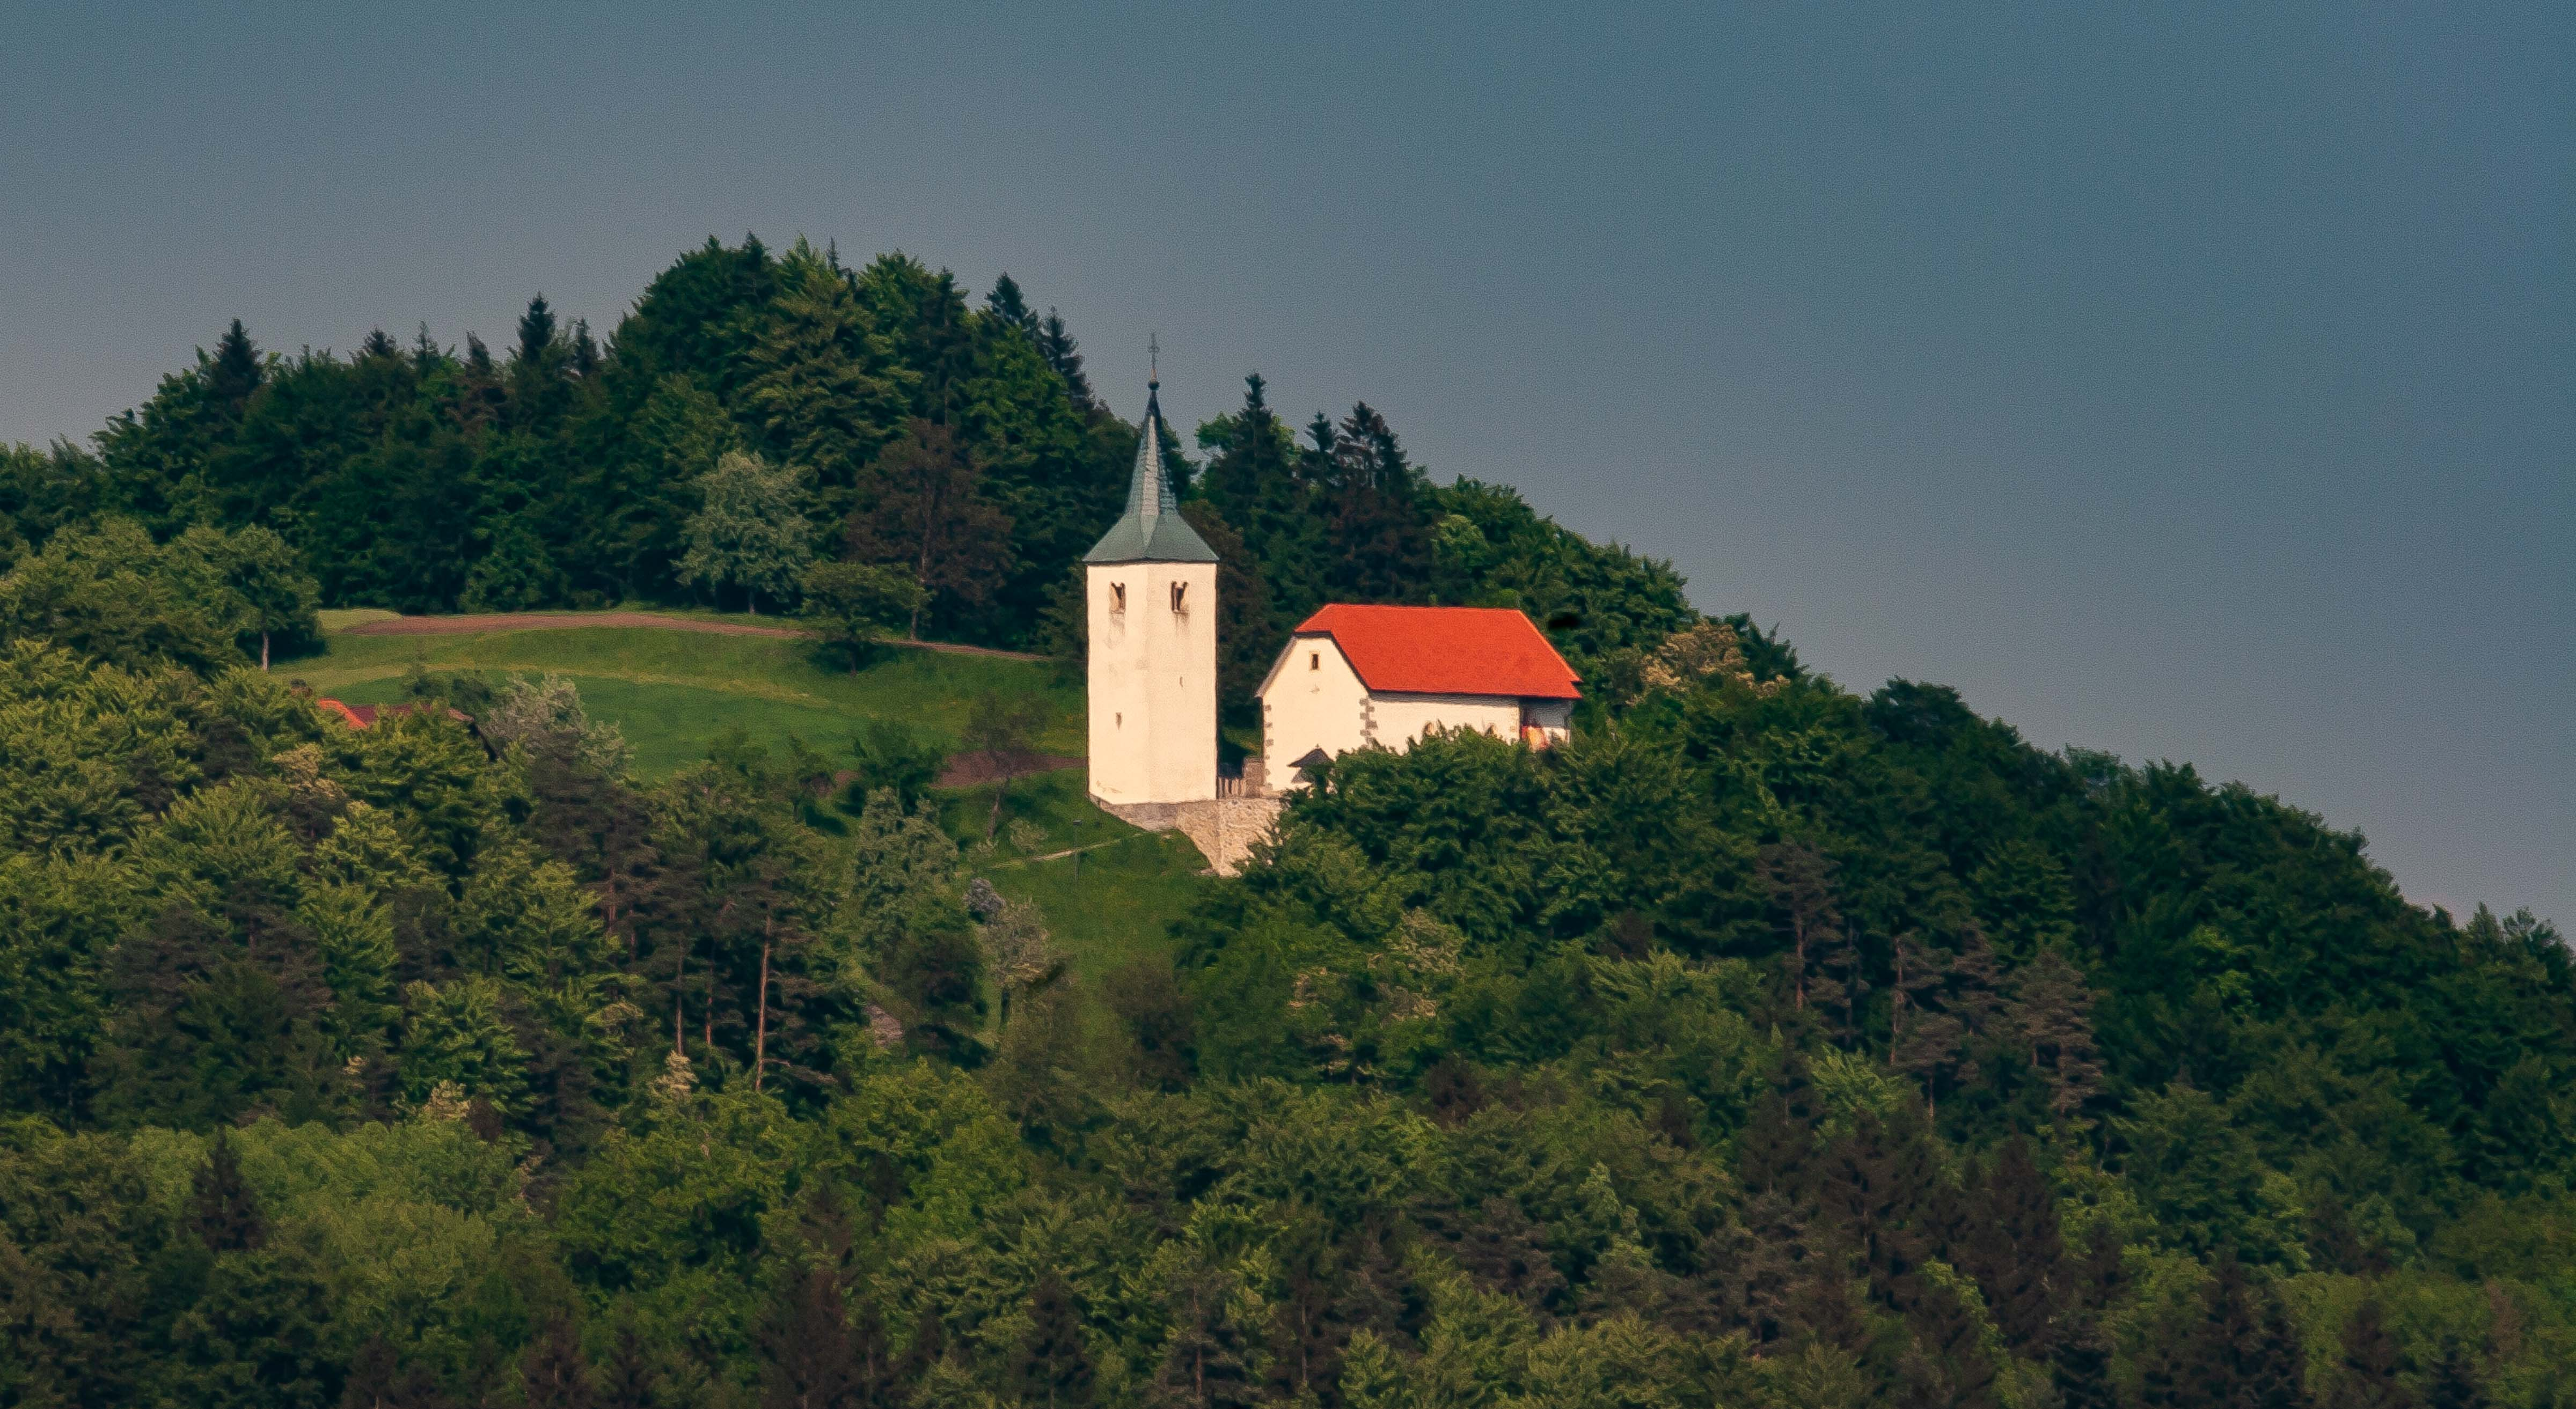 Slovenia, Lukovica Prov, Church On Hill, 2006, IMG 6121